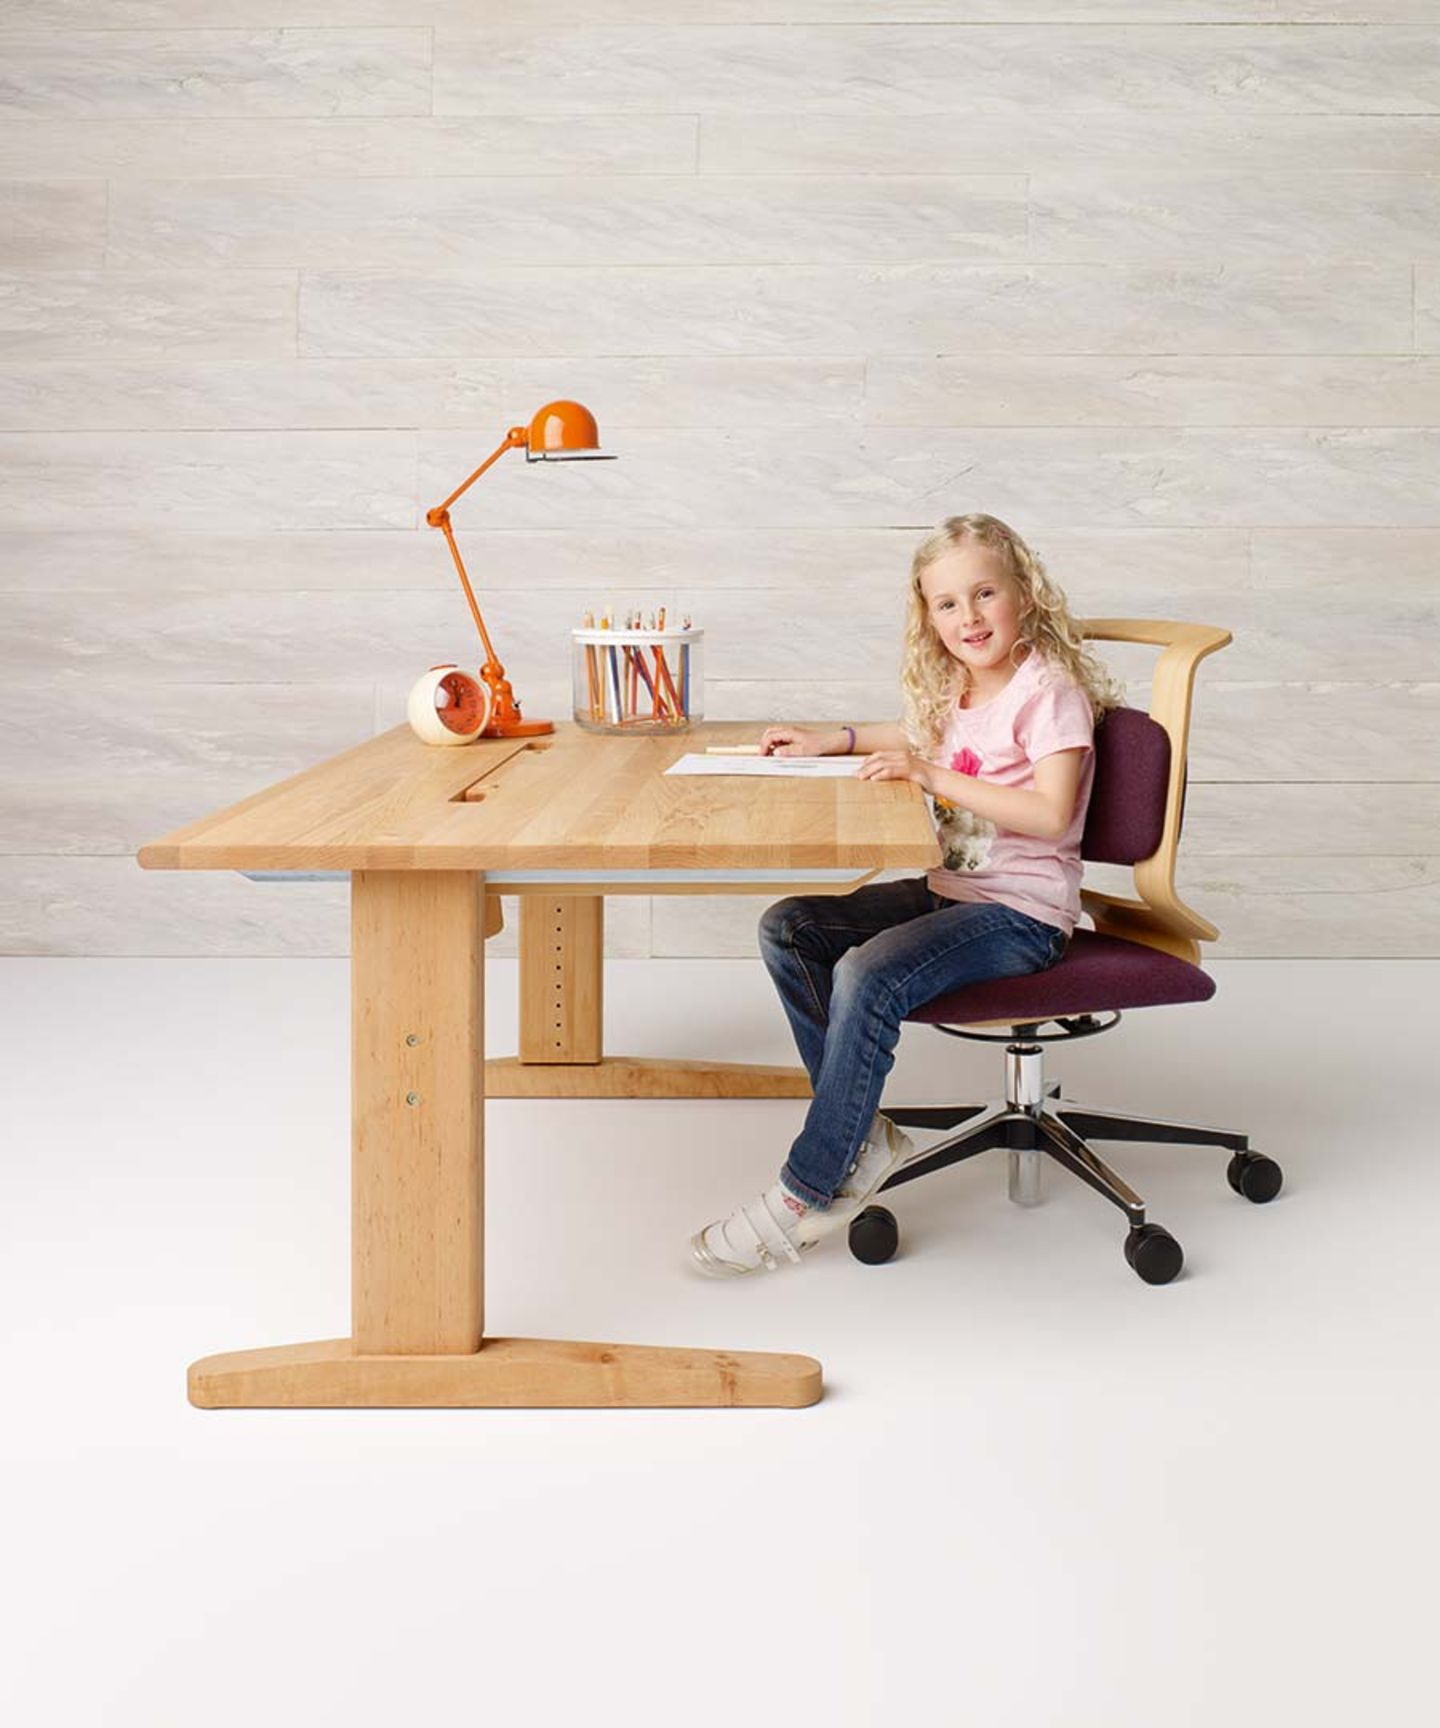 Swivel chair and desk of solid wood for kids